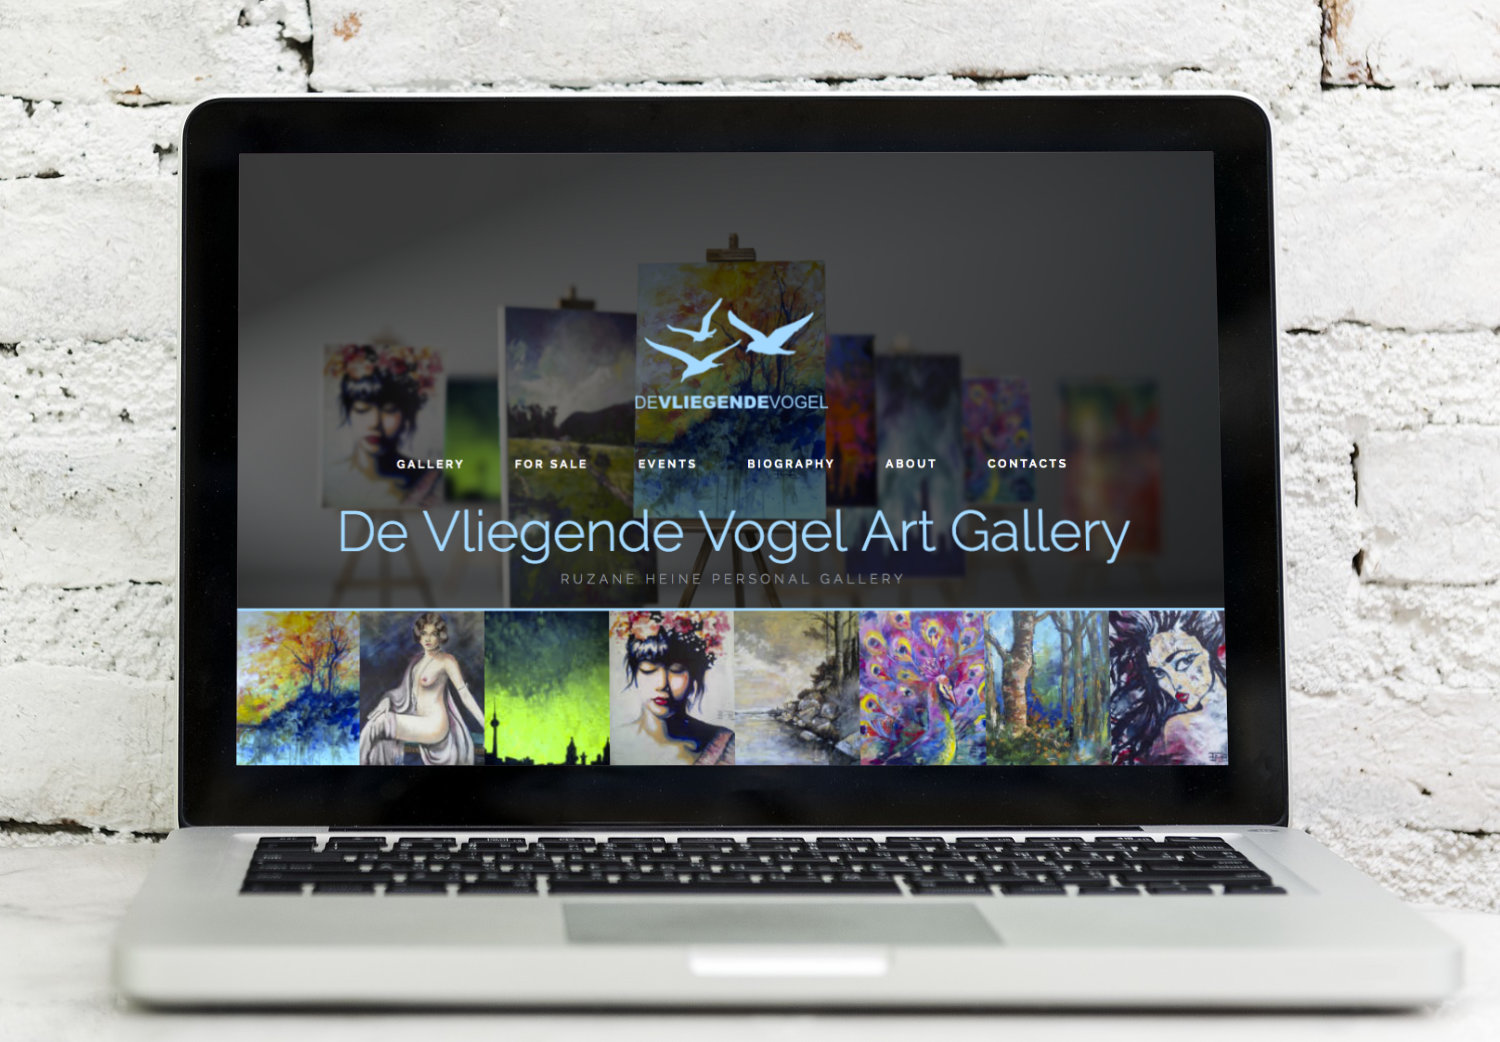 Website - De Vliegende Vogel Art Gallery